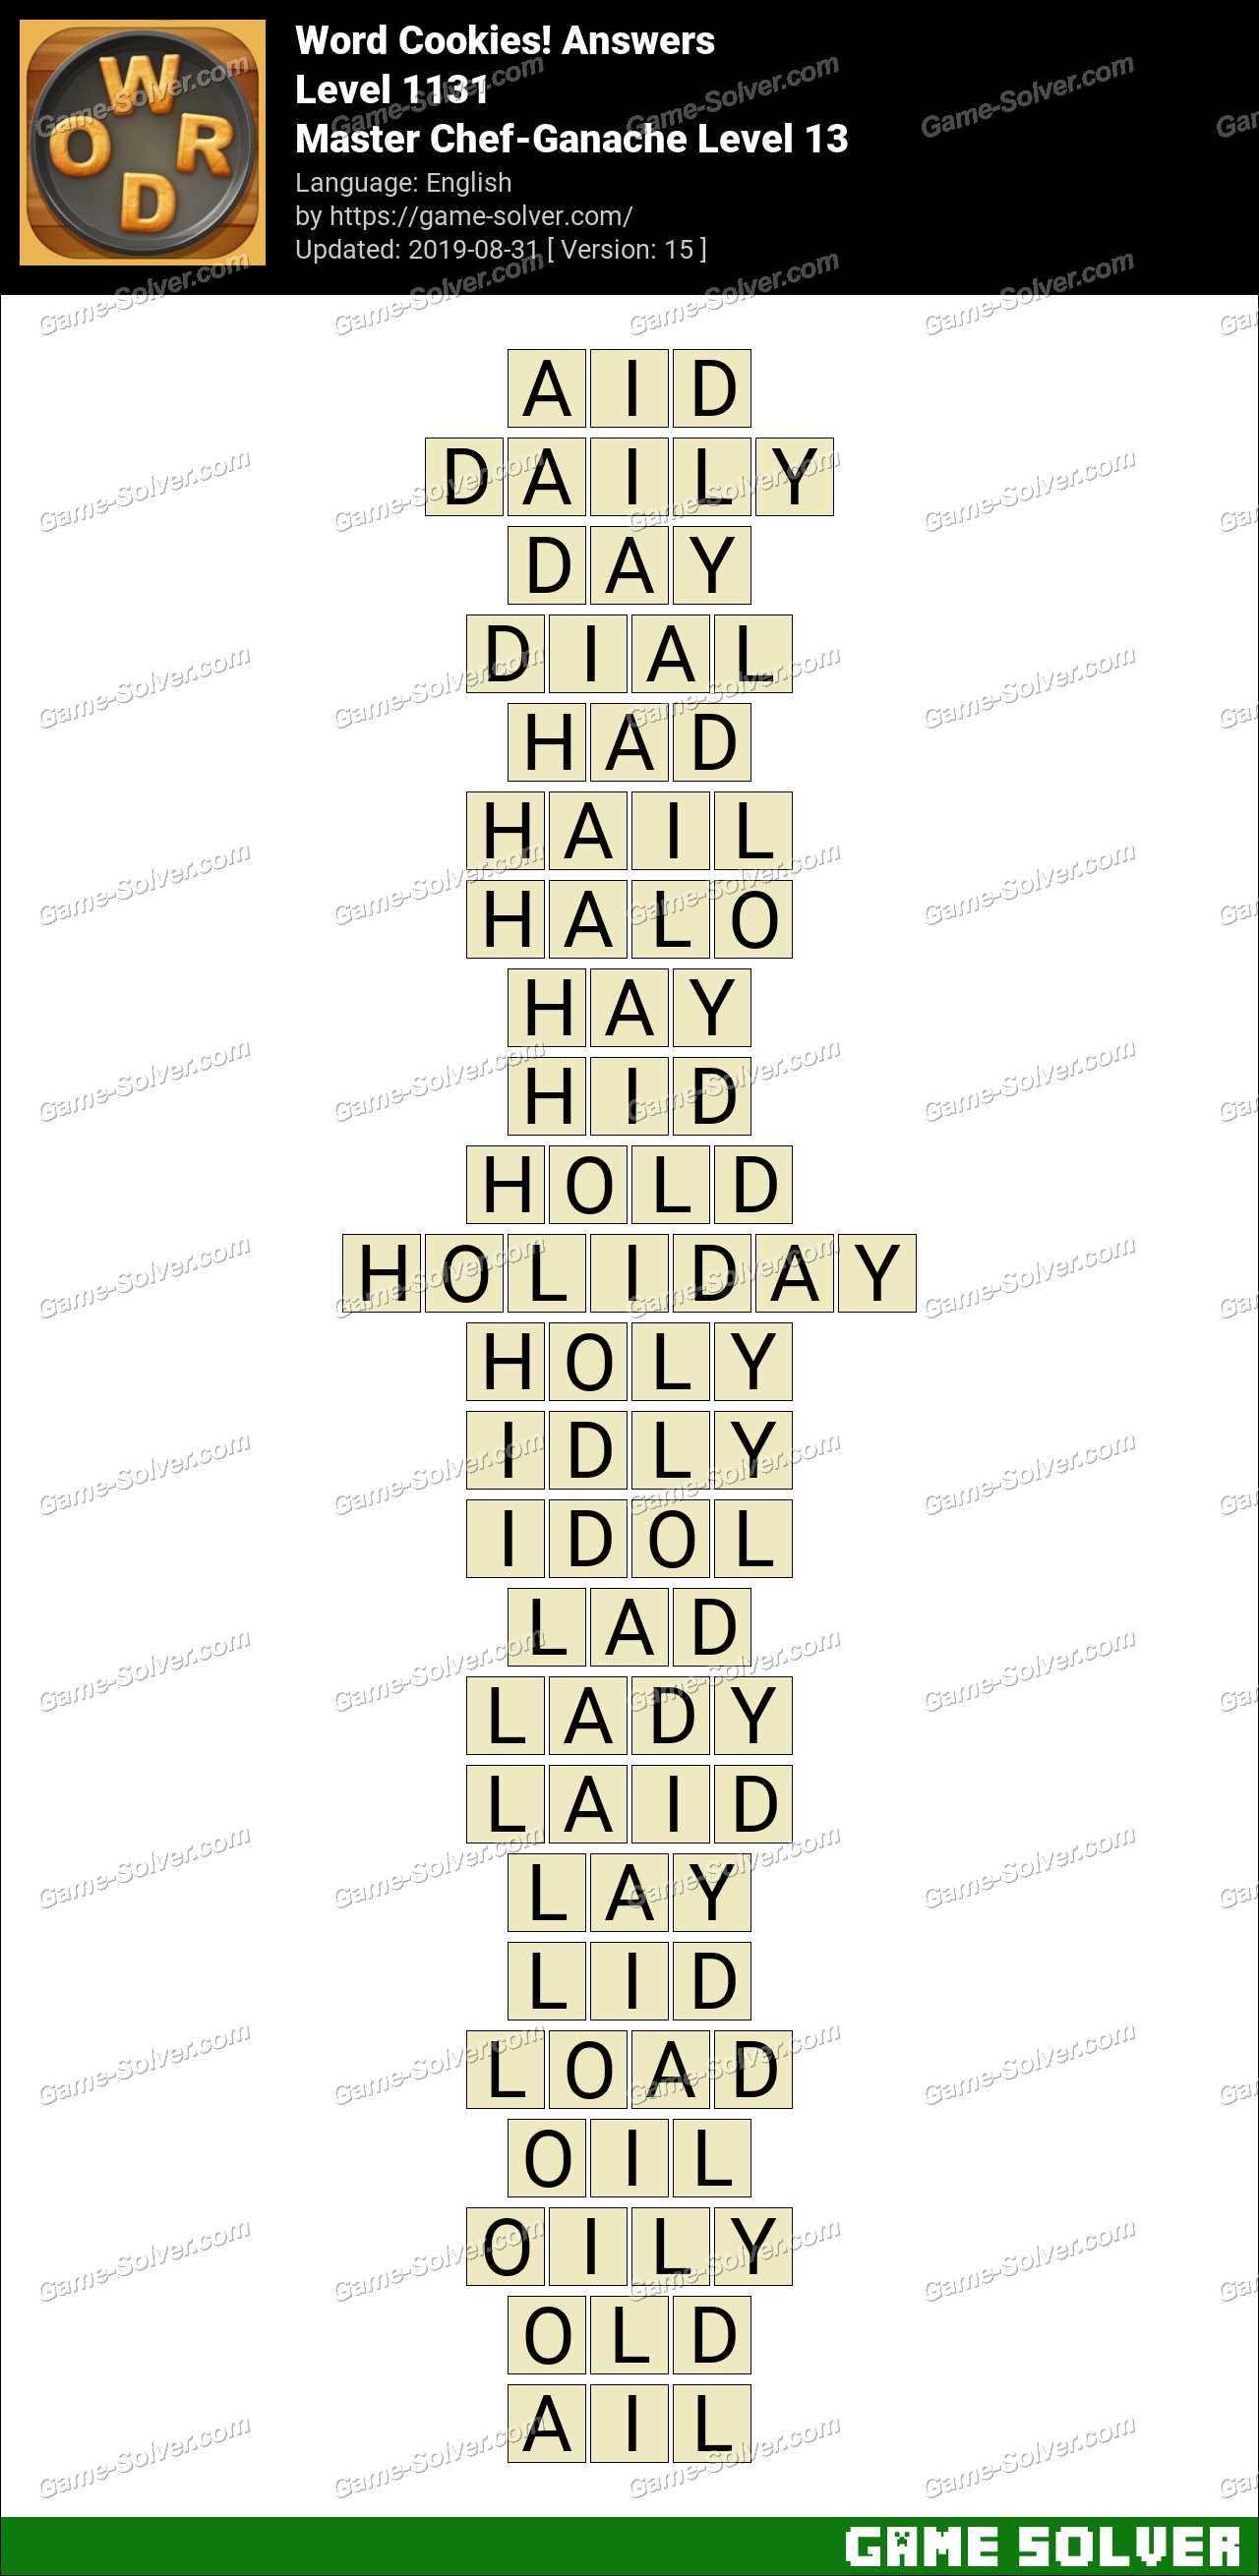 Word Cookies Master Chef-Ganache Level 13 Answers